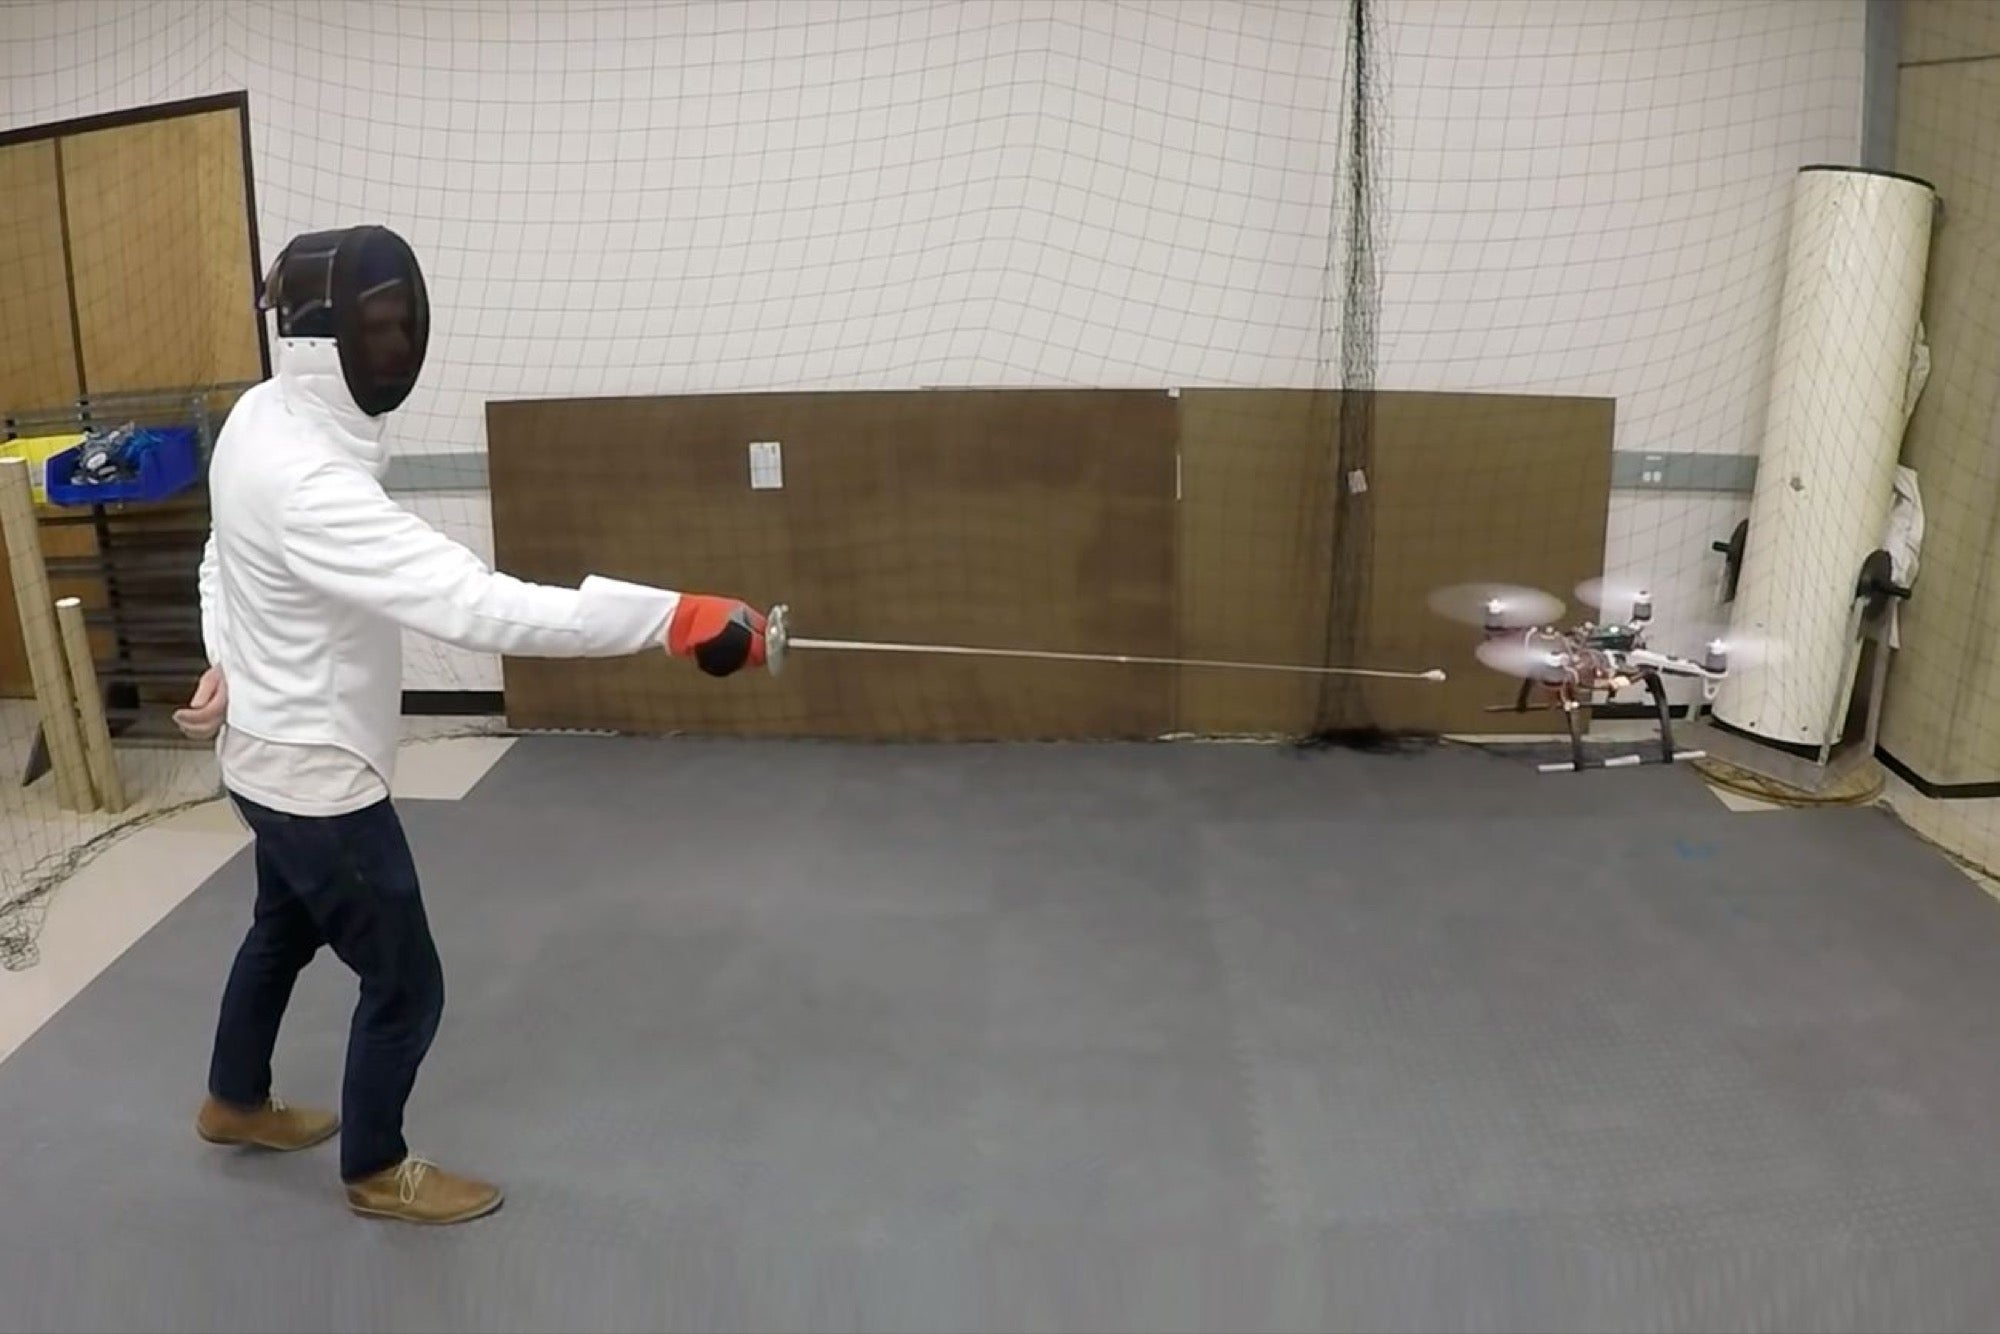 Researchers Are Teaching Drones To Sword Fight